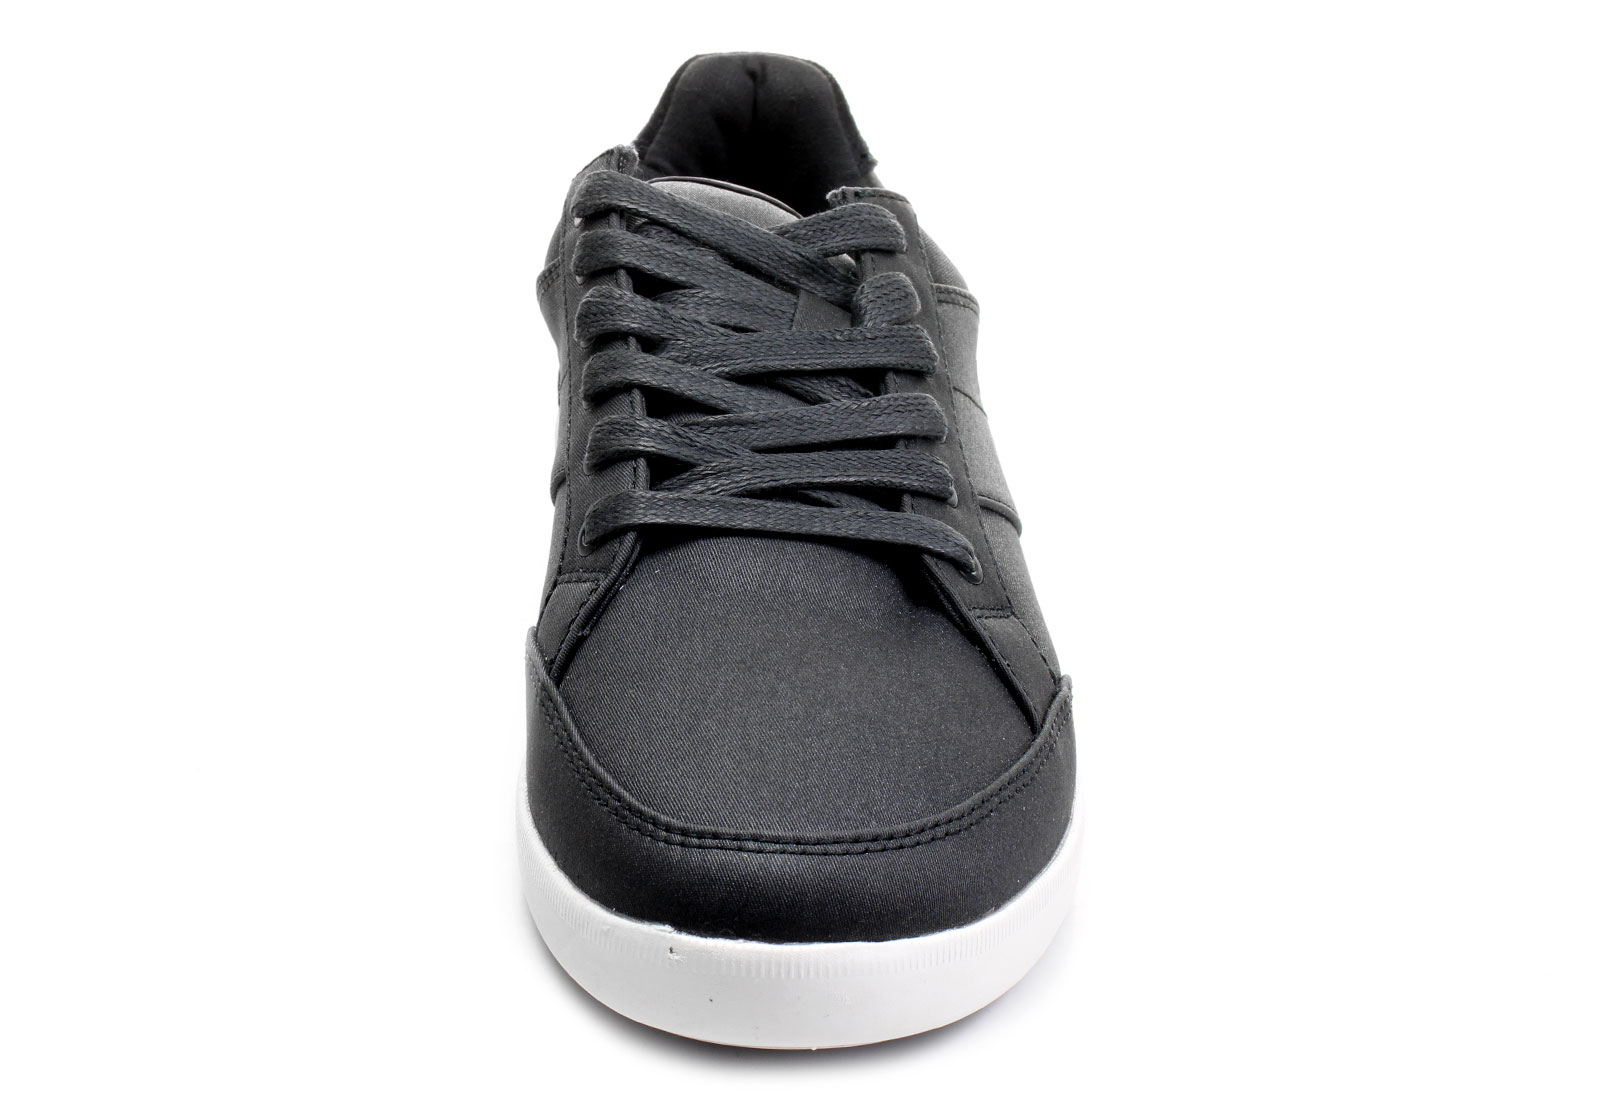 89a71b7cf476 Boxfresh Shoes - Creeland - E14569-nvy - Online shop for sneakers ...